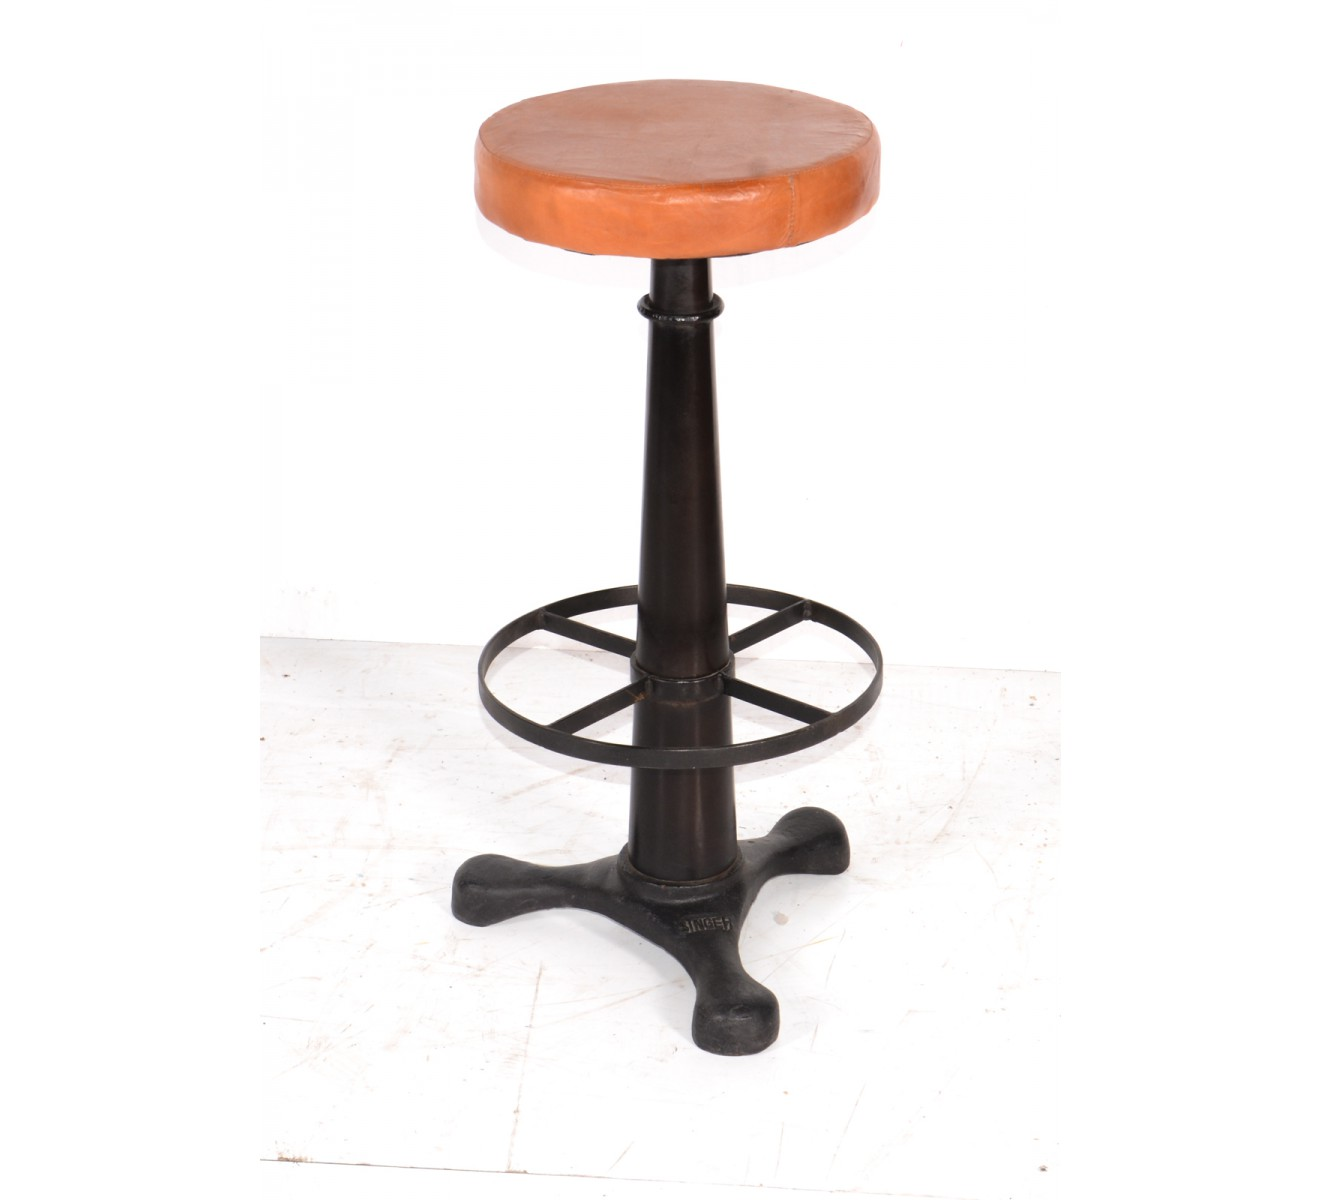 Tabouret de bar industriel en assise cuir r glable 39 atelier grey 39 6954 - Tabouret de bar cuir ...